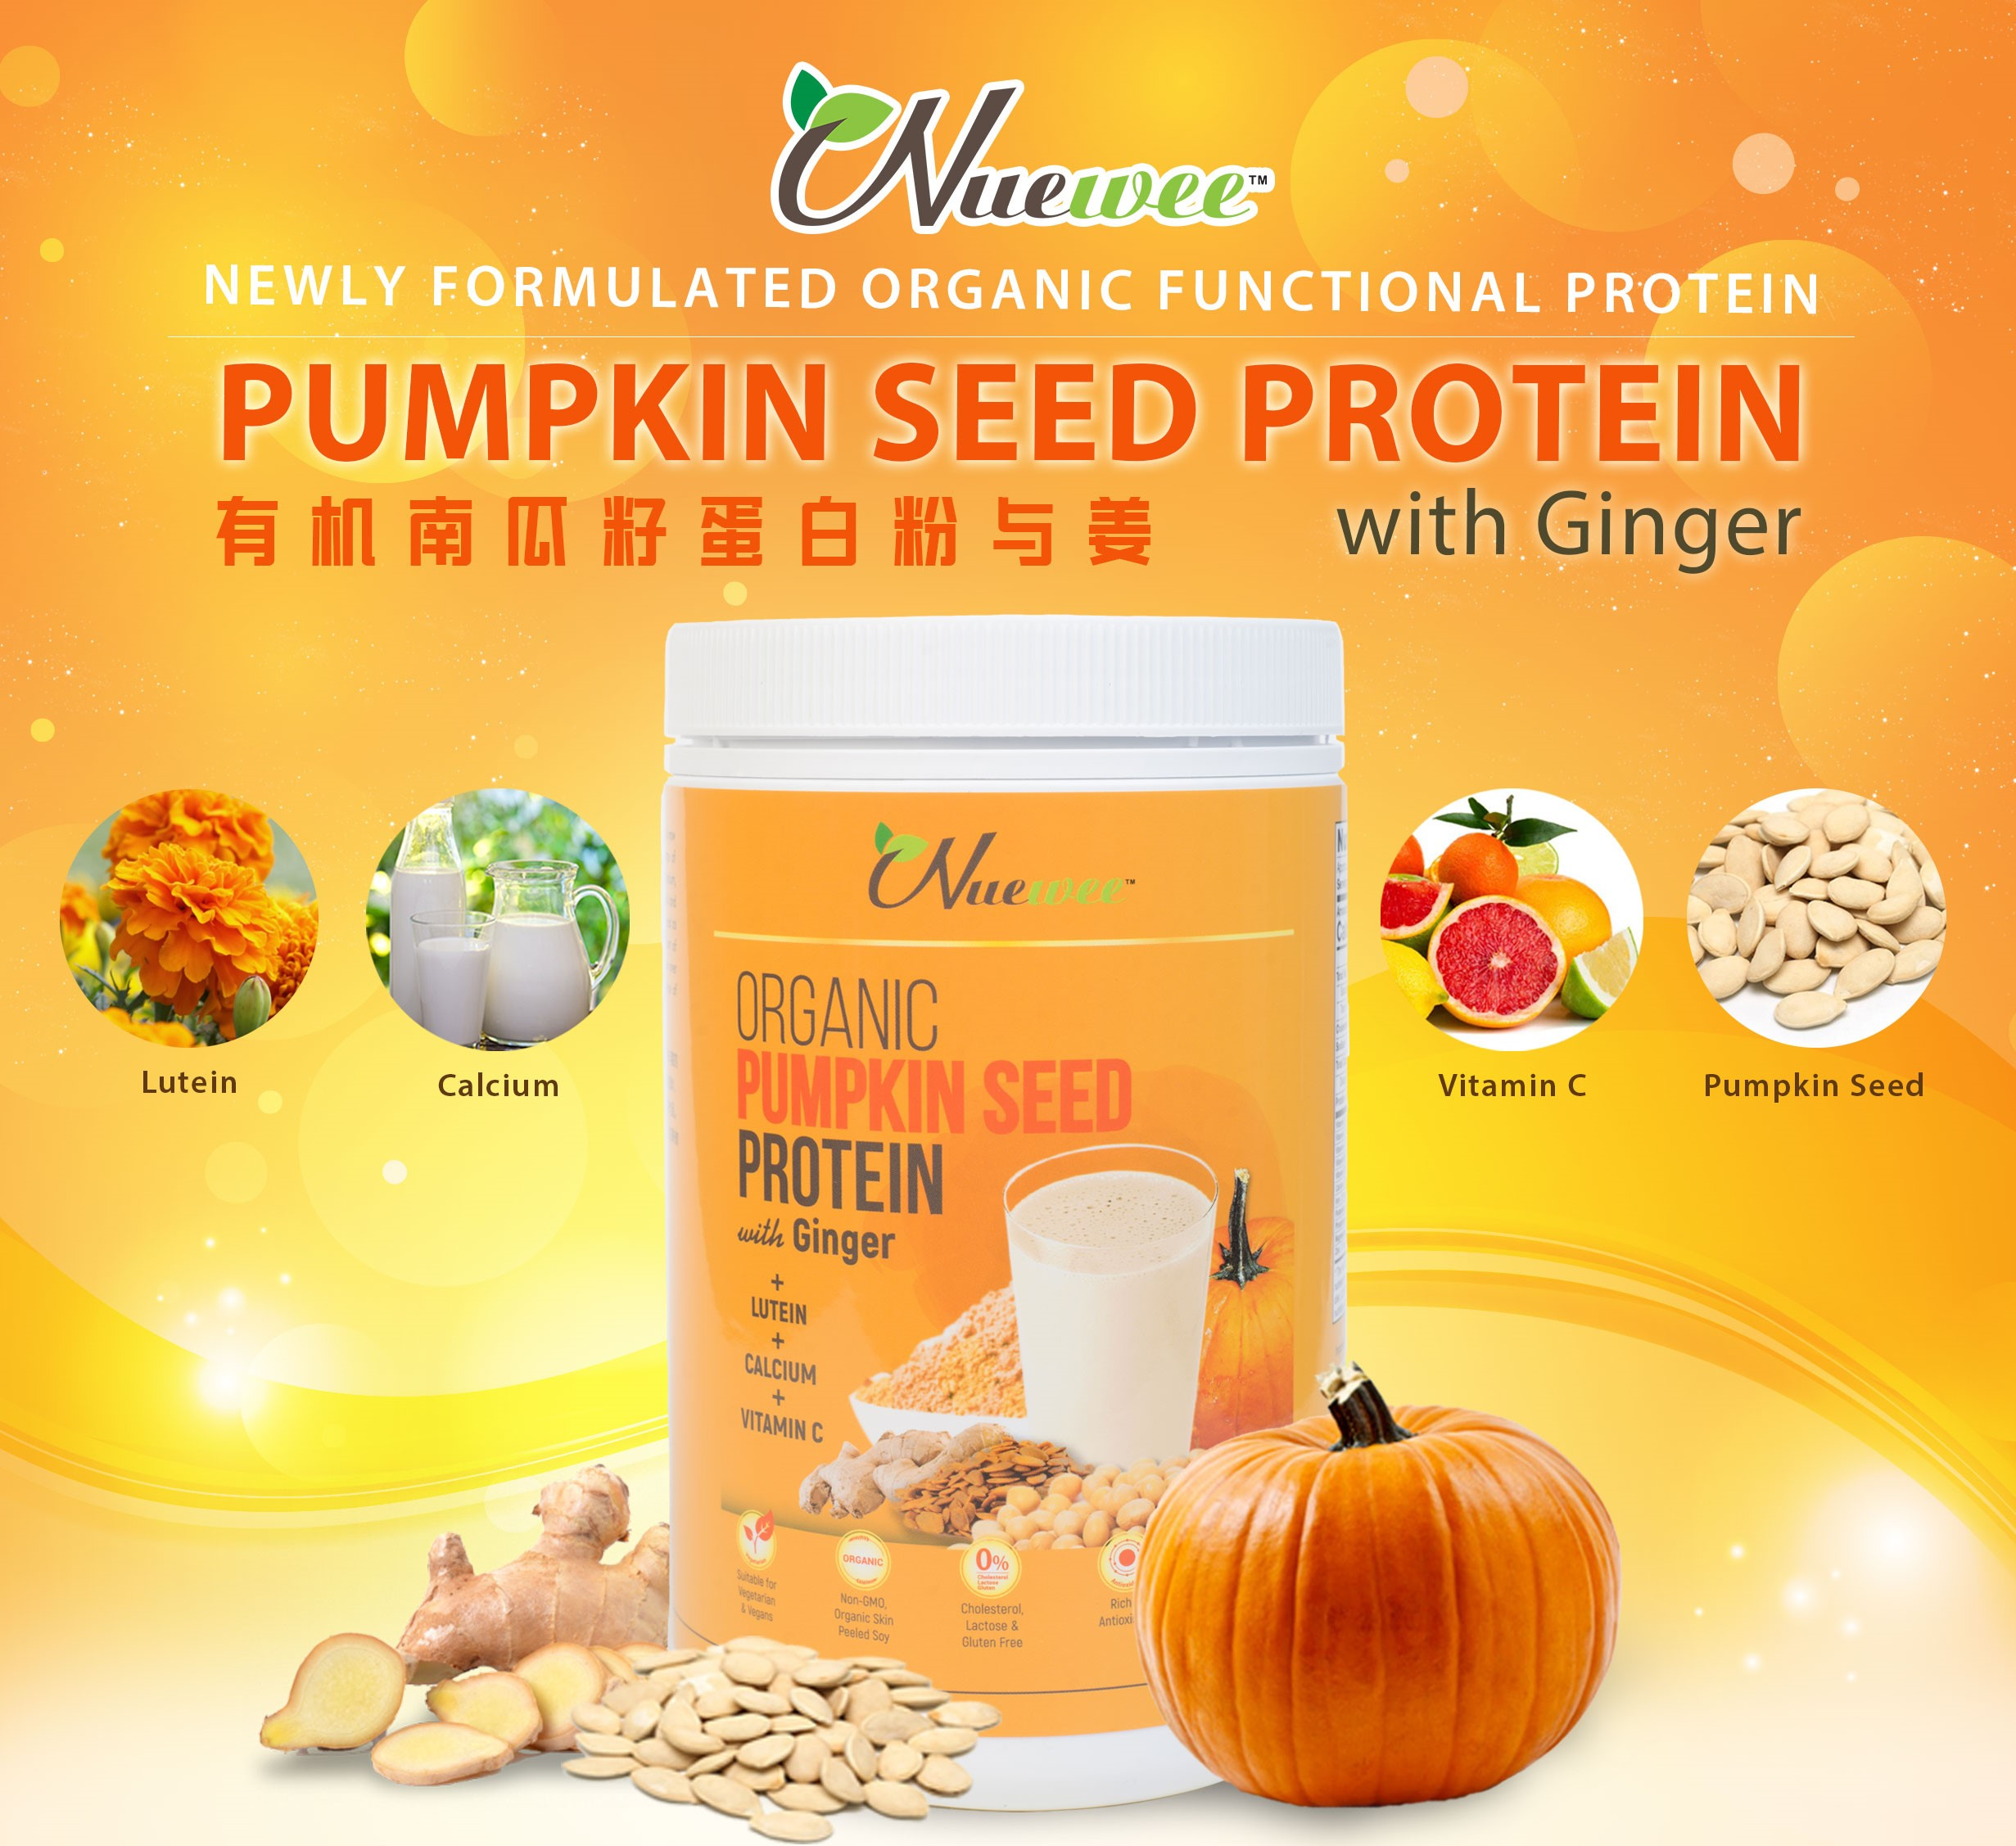 Nuewee Organic Pumpkin Seeds Protein with Ginger.jpg